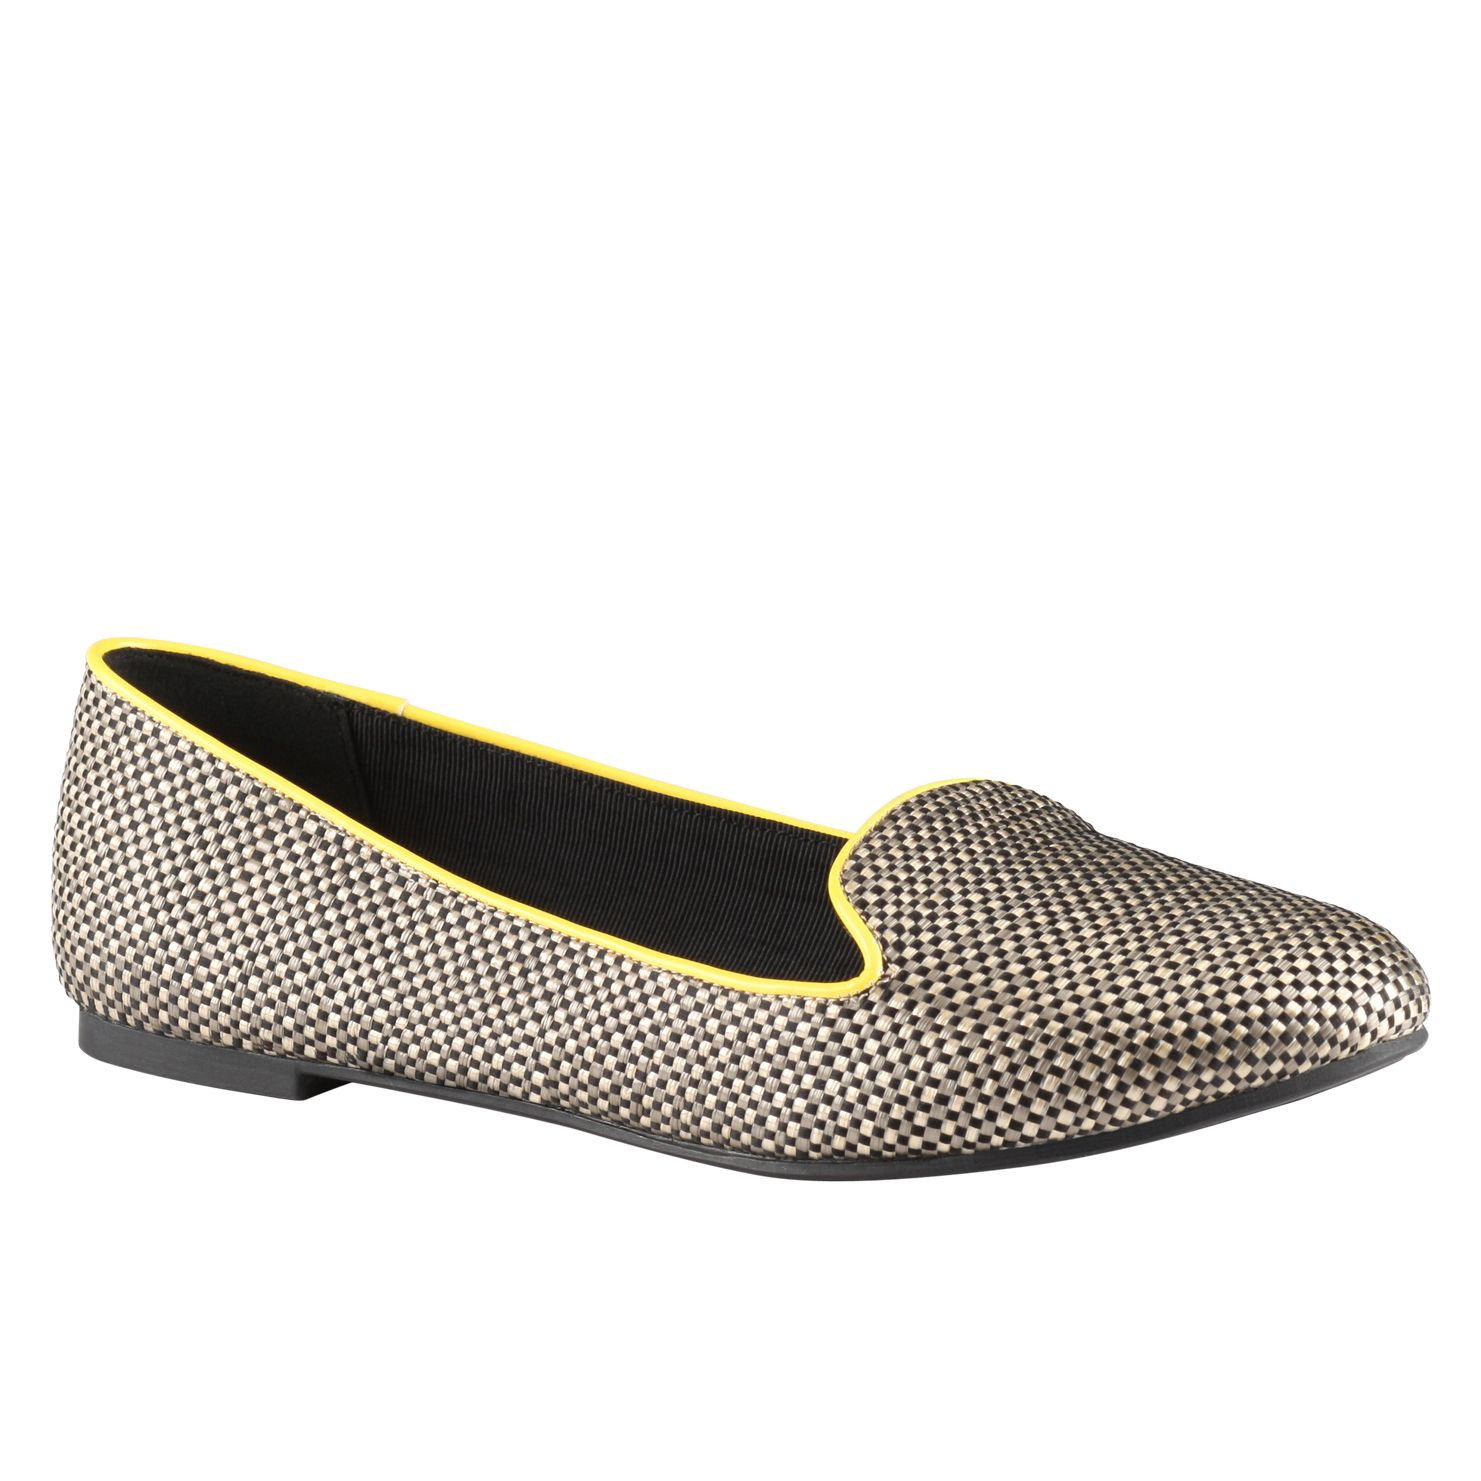 Choiven loafers pump shoes